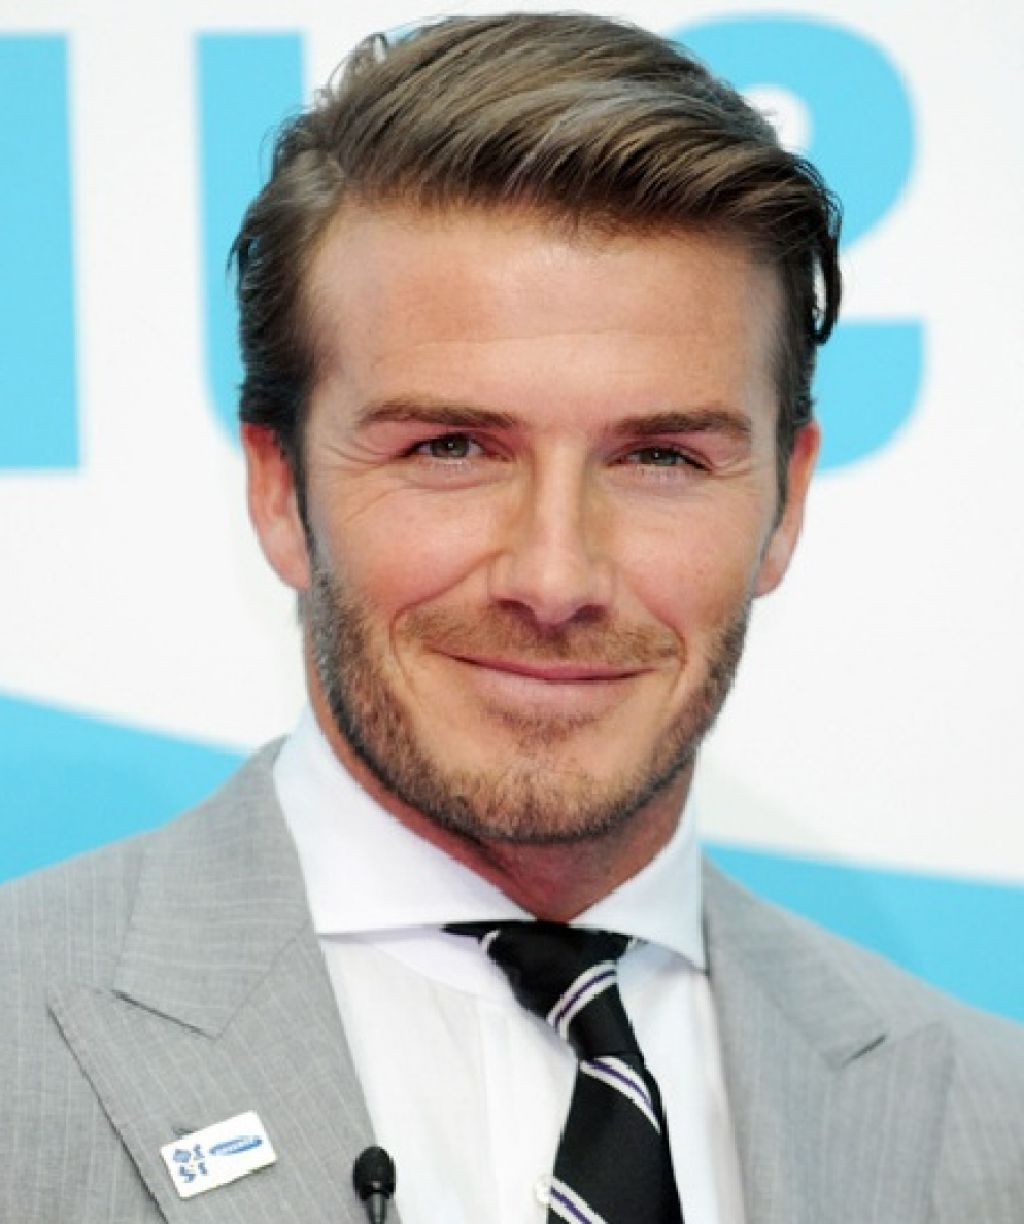 30 best hairstyles for men any guy would love!